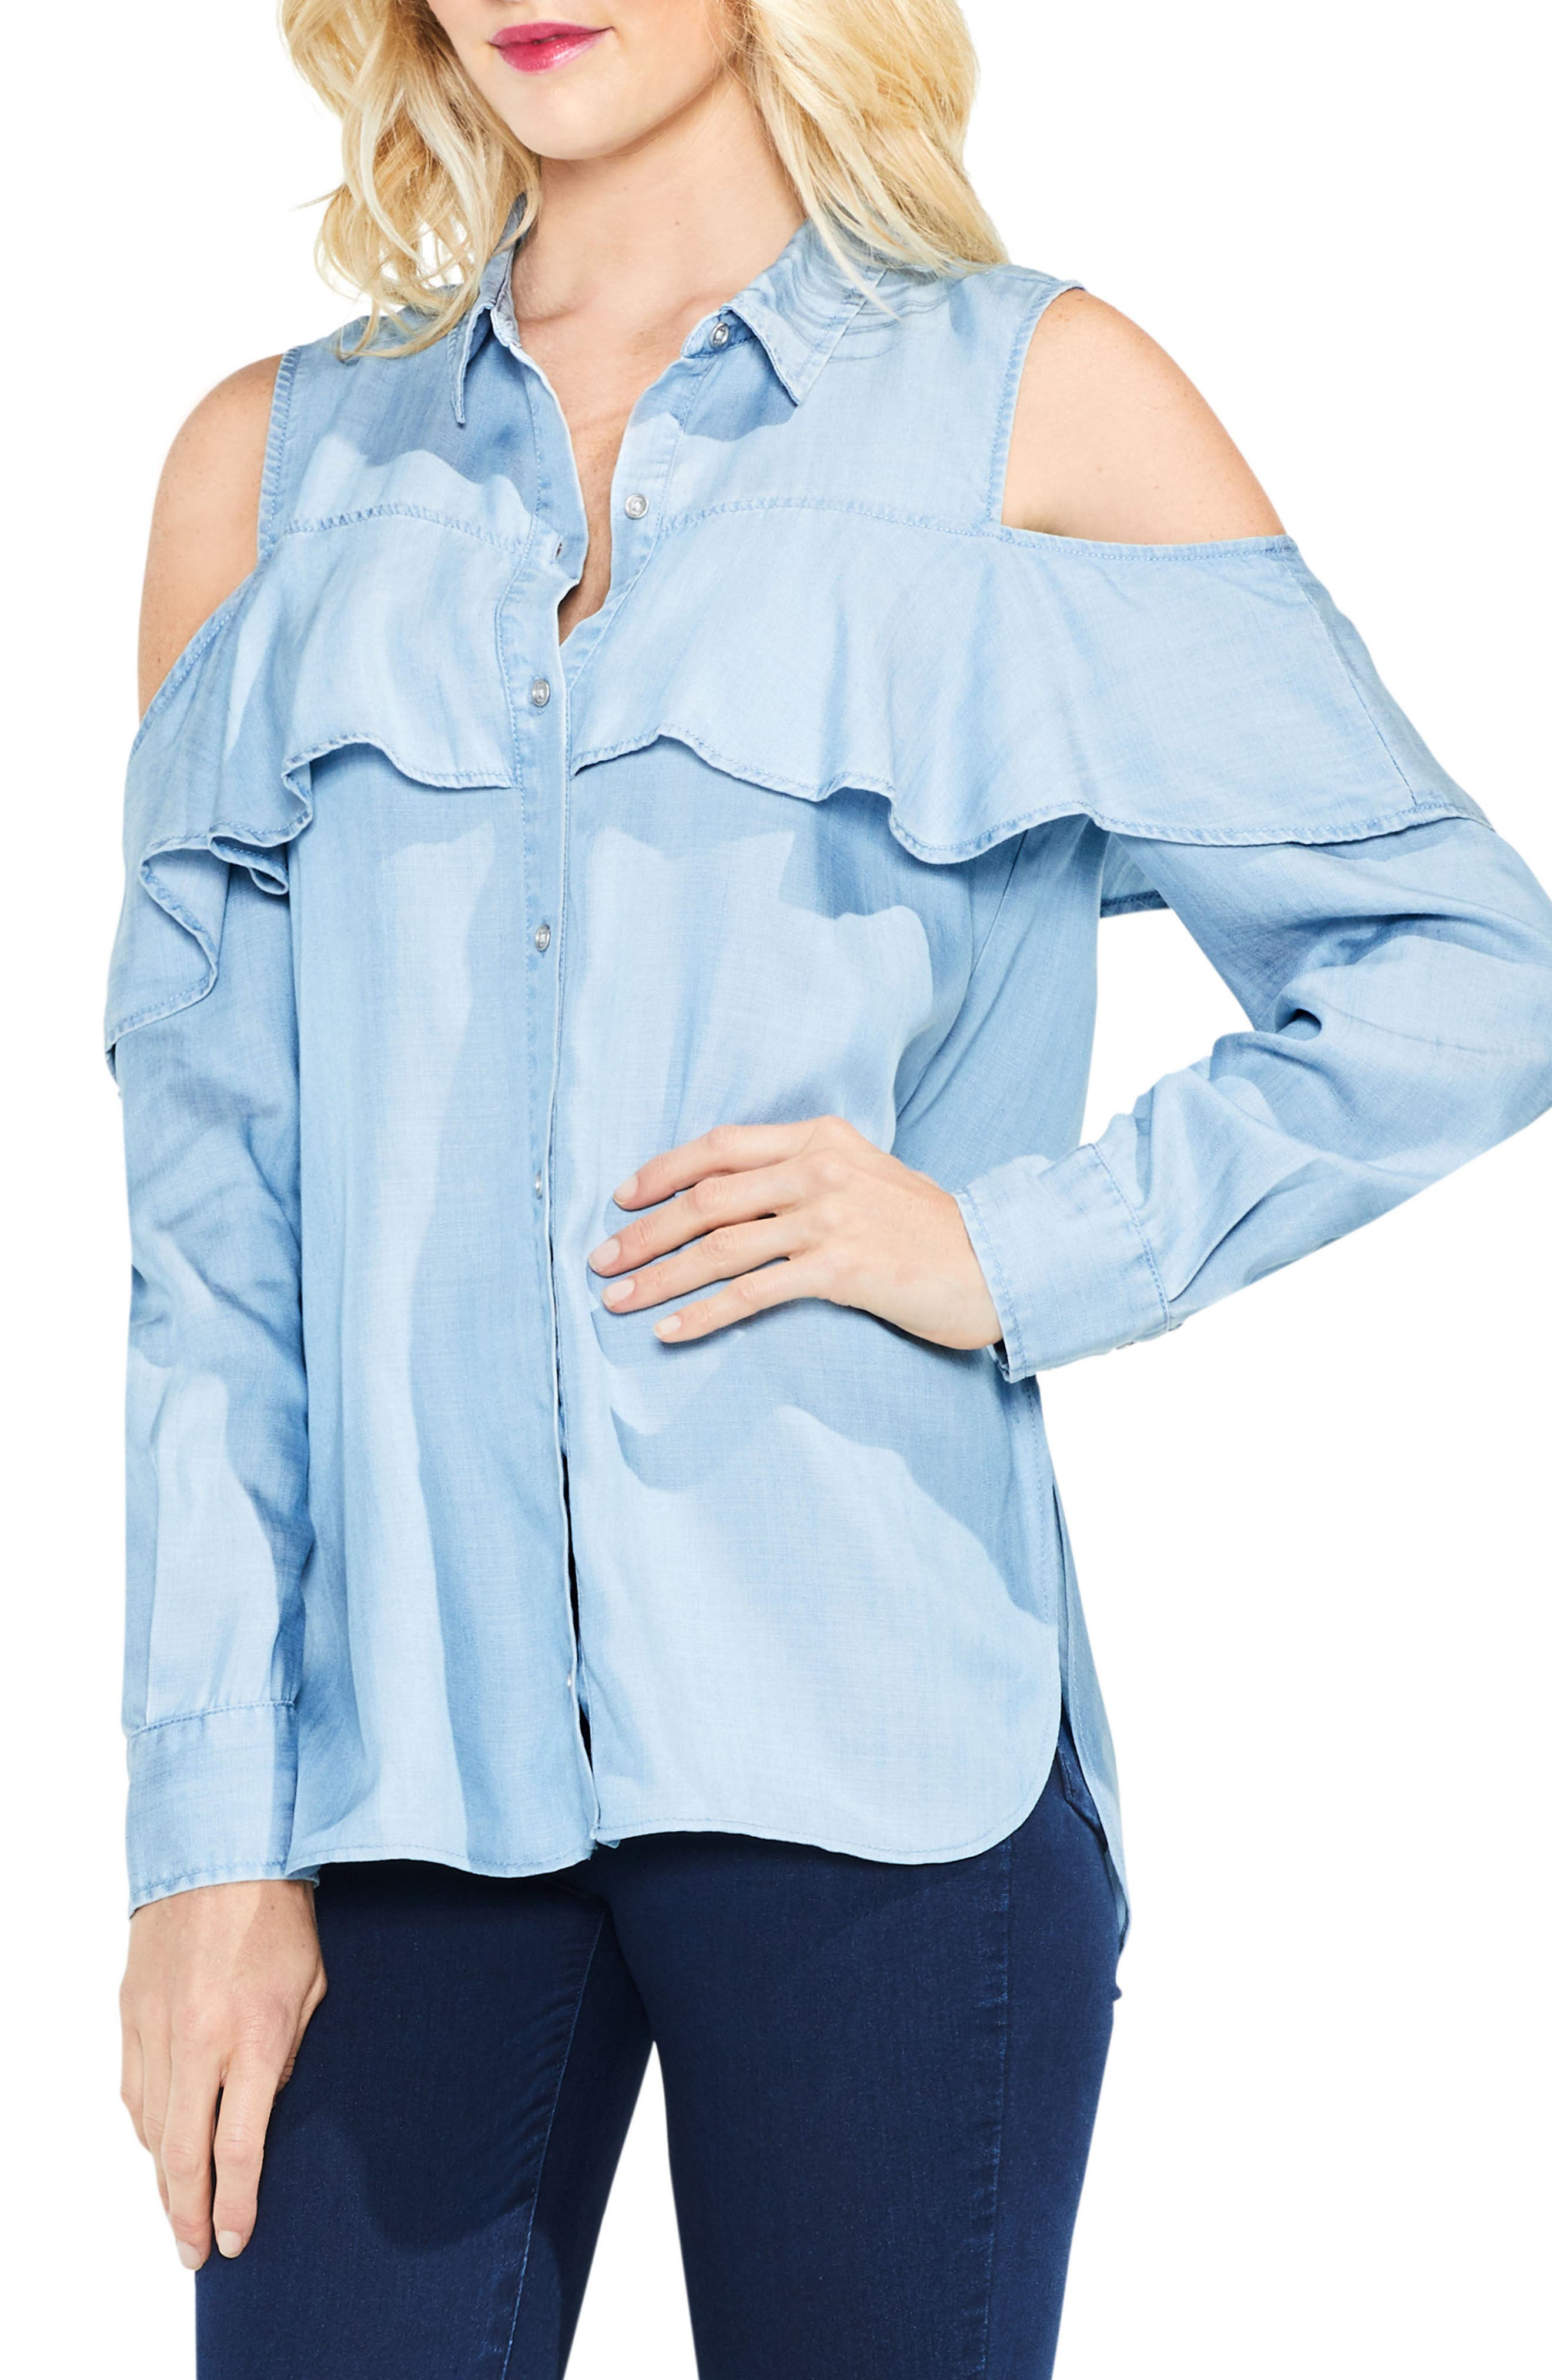 Main Image - Two by Vince Camuto Cold Shoulder Ruffled Chambray Shirt